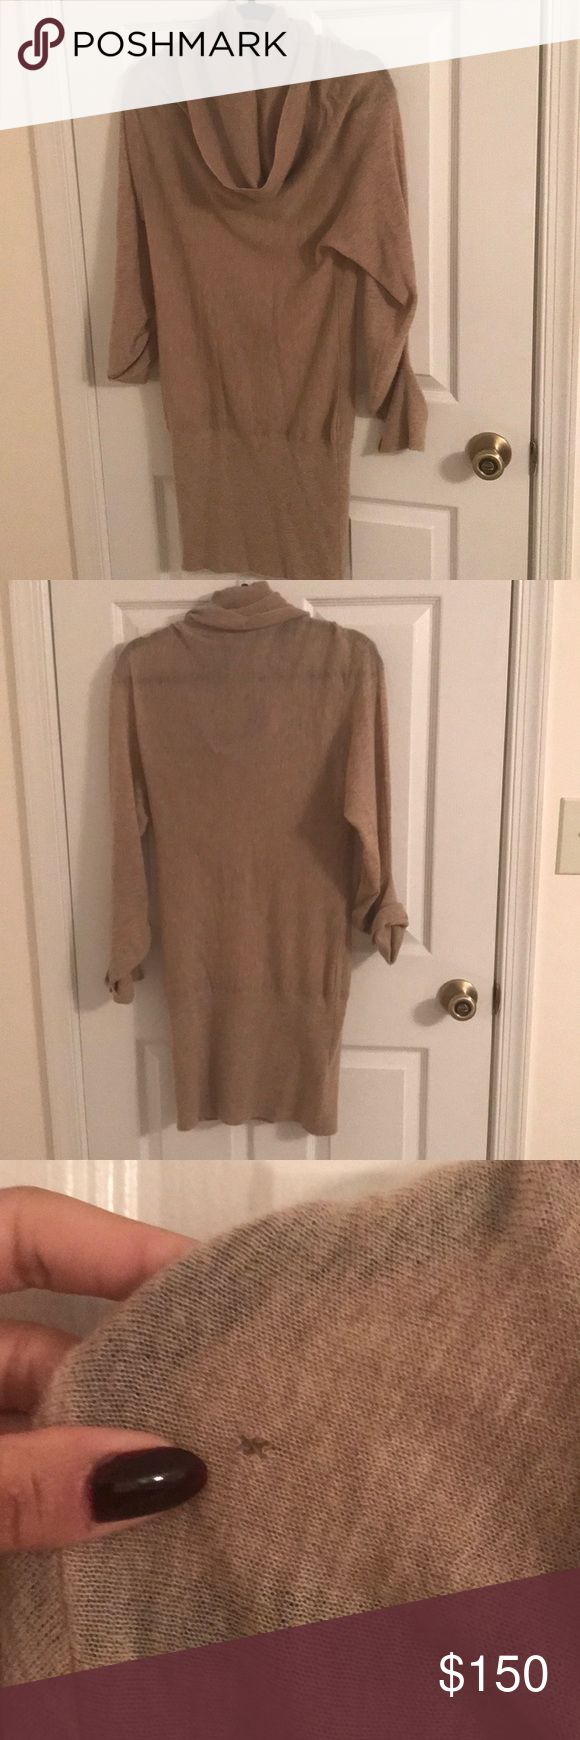 BCBG beige cashmere dress in size M BCBGMaxazria beige cashmere dress in size M. Flattering shape and with cowl neck. Small hole at neck, can easily be repaired. Smoke free, pet free home. Feel free to make an offer BCBGMaxAzria Dresses